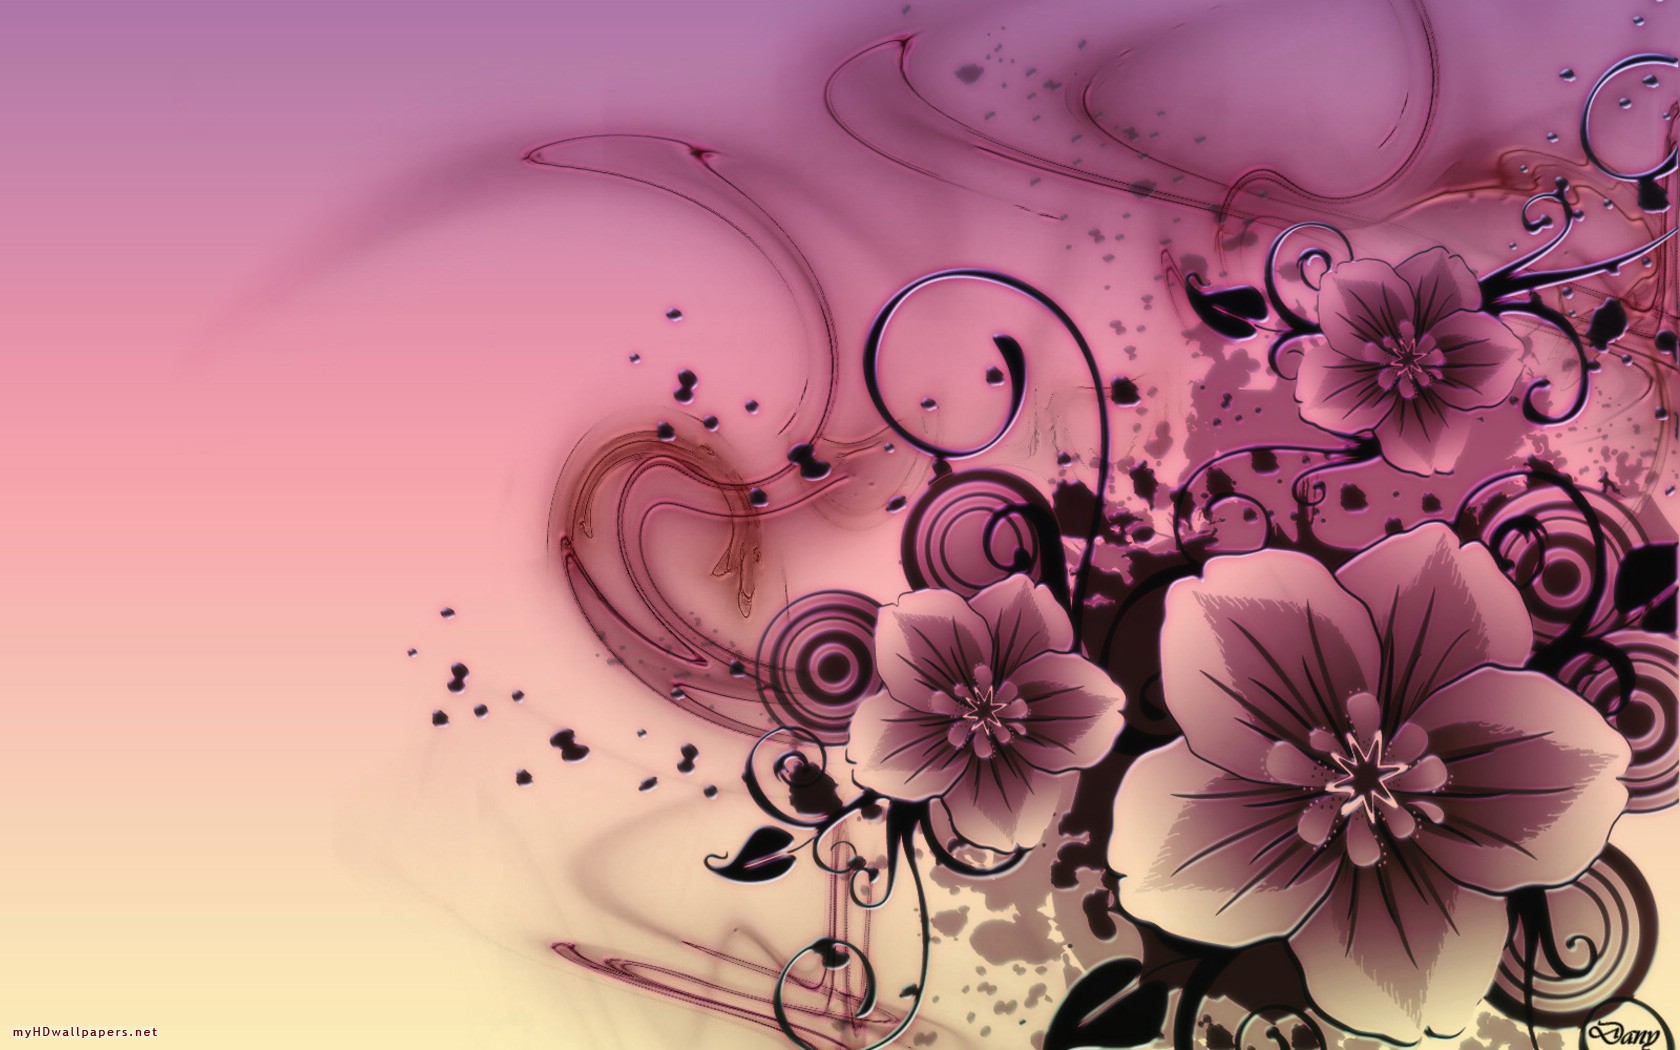 100 Wallpaper Cantik For Android 1440x1280 Wallpapers